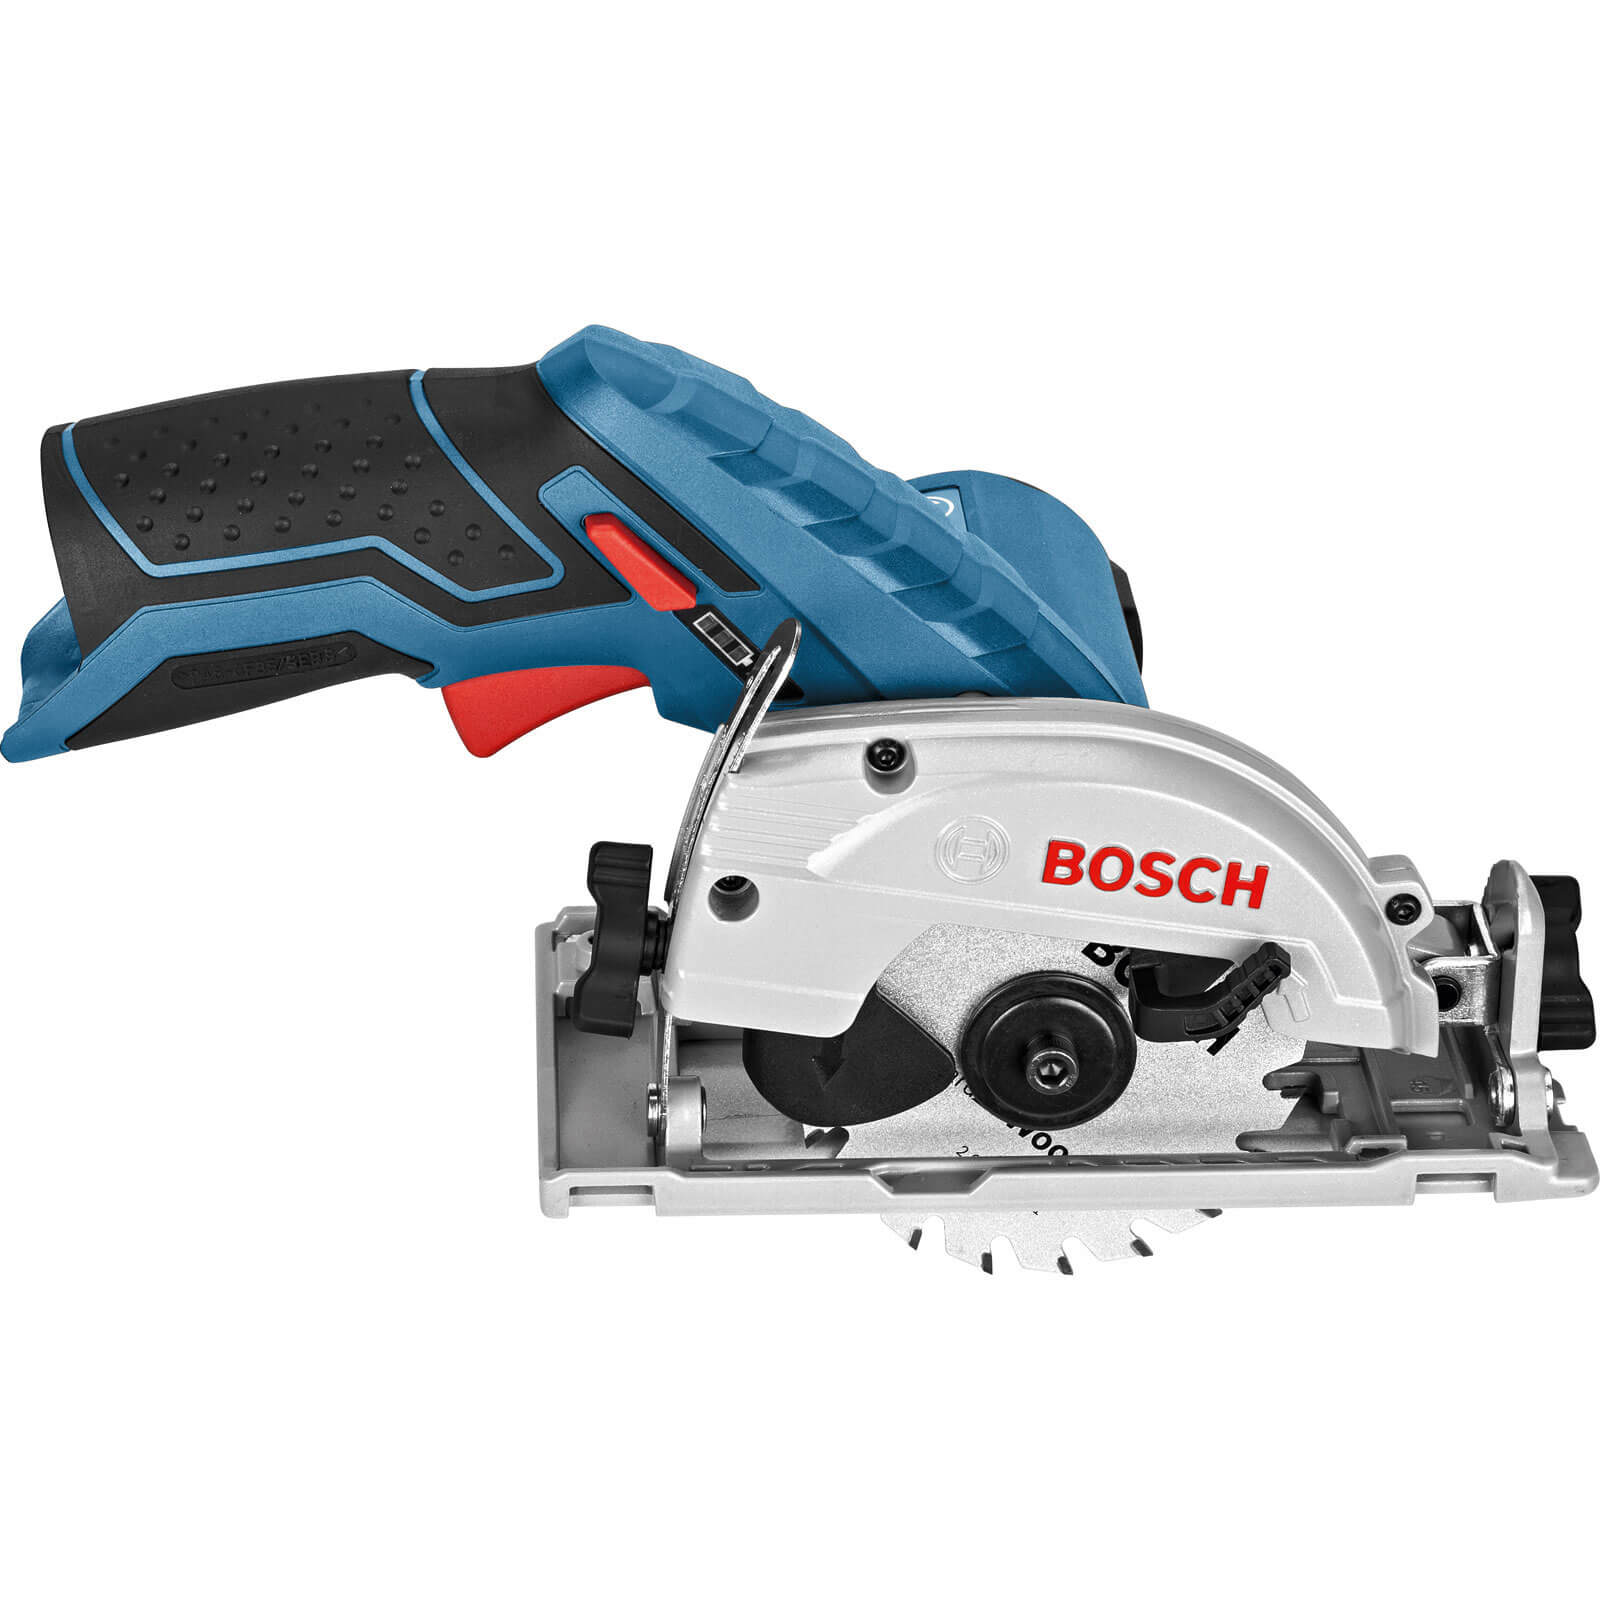 Image of Bosch GKS 12 V-LI 12v Cordless Circular Saw No Batteries No Charger No Case